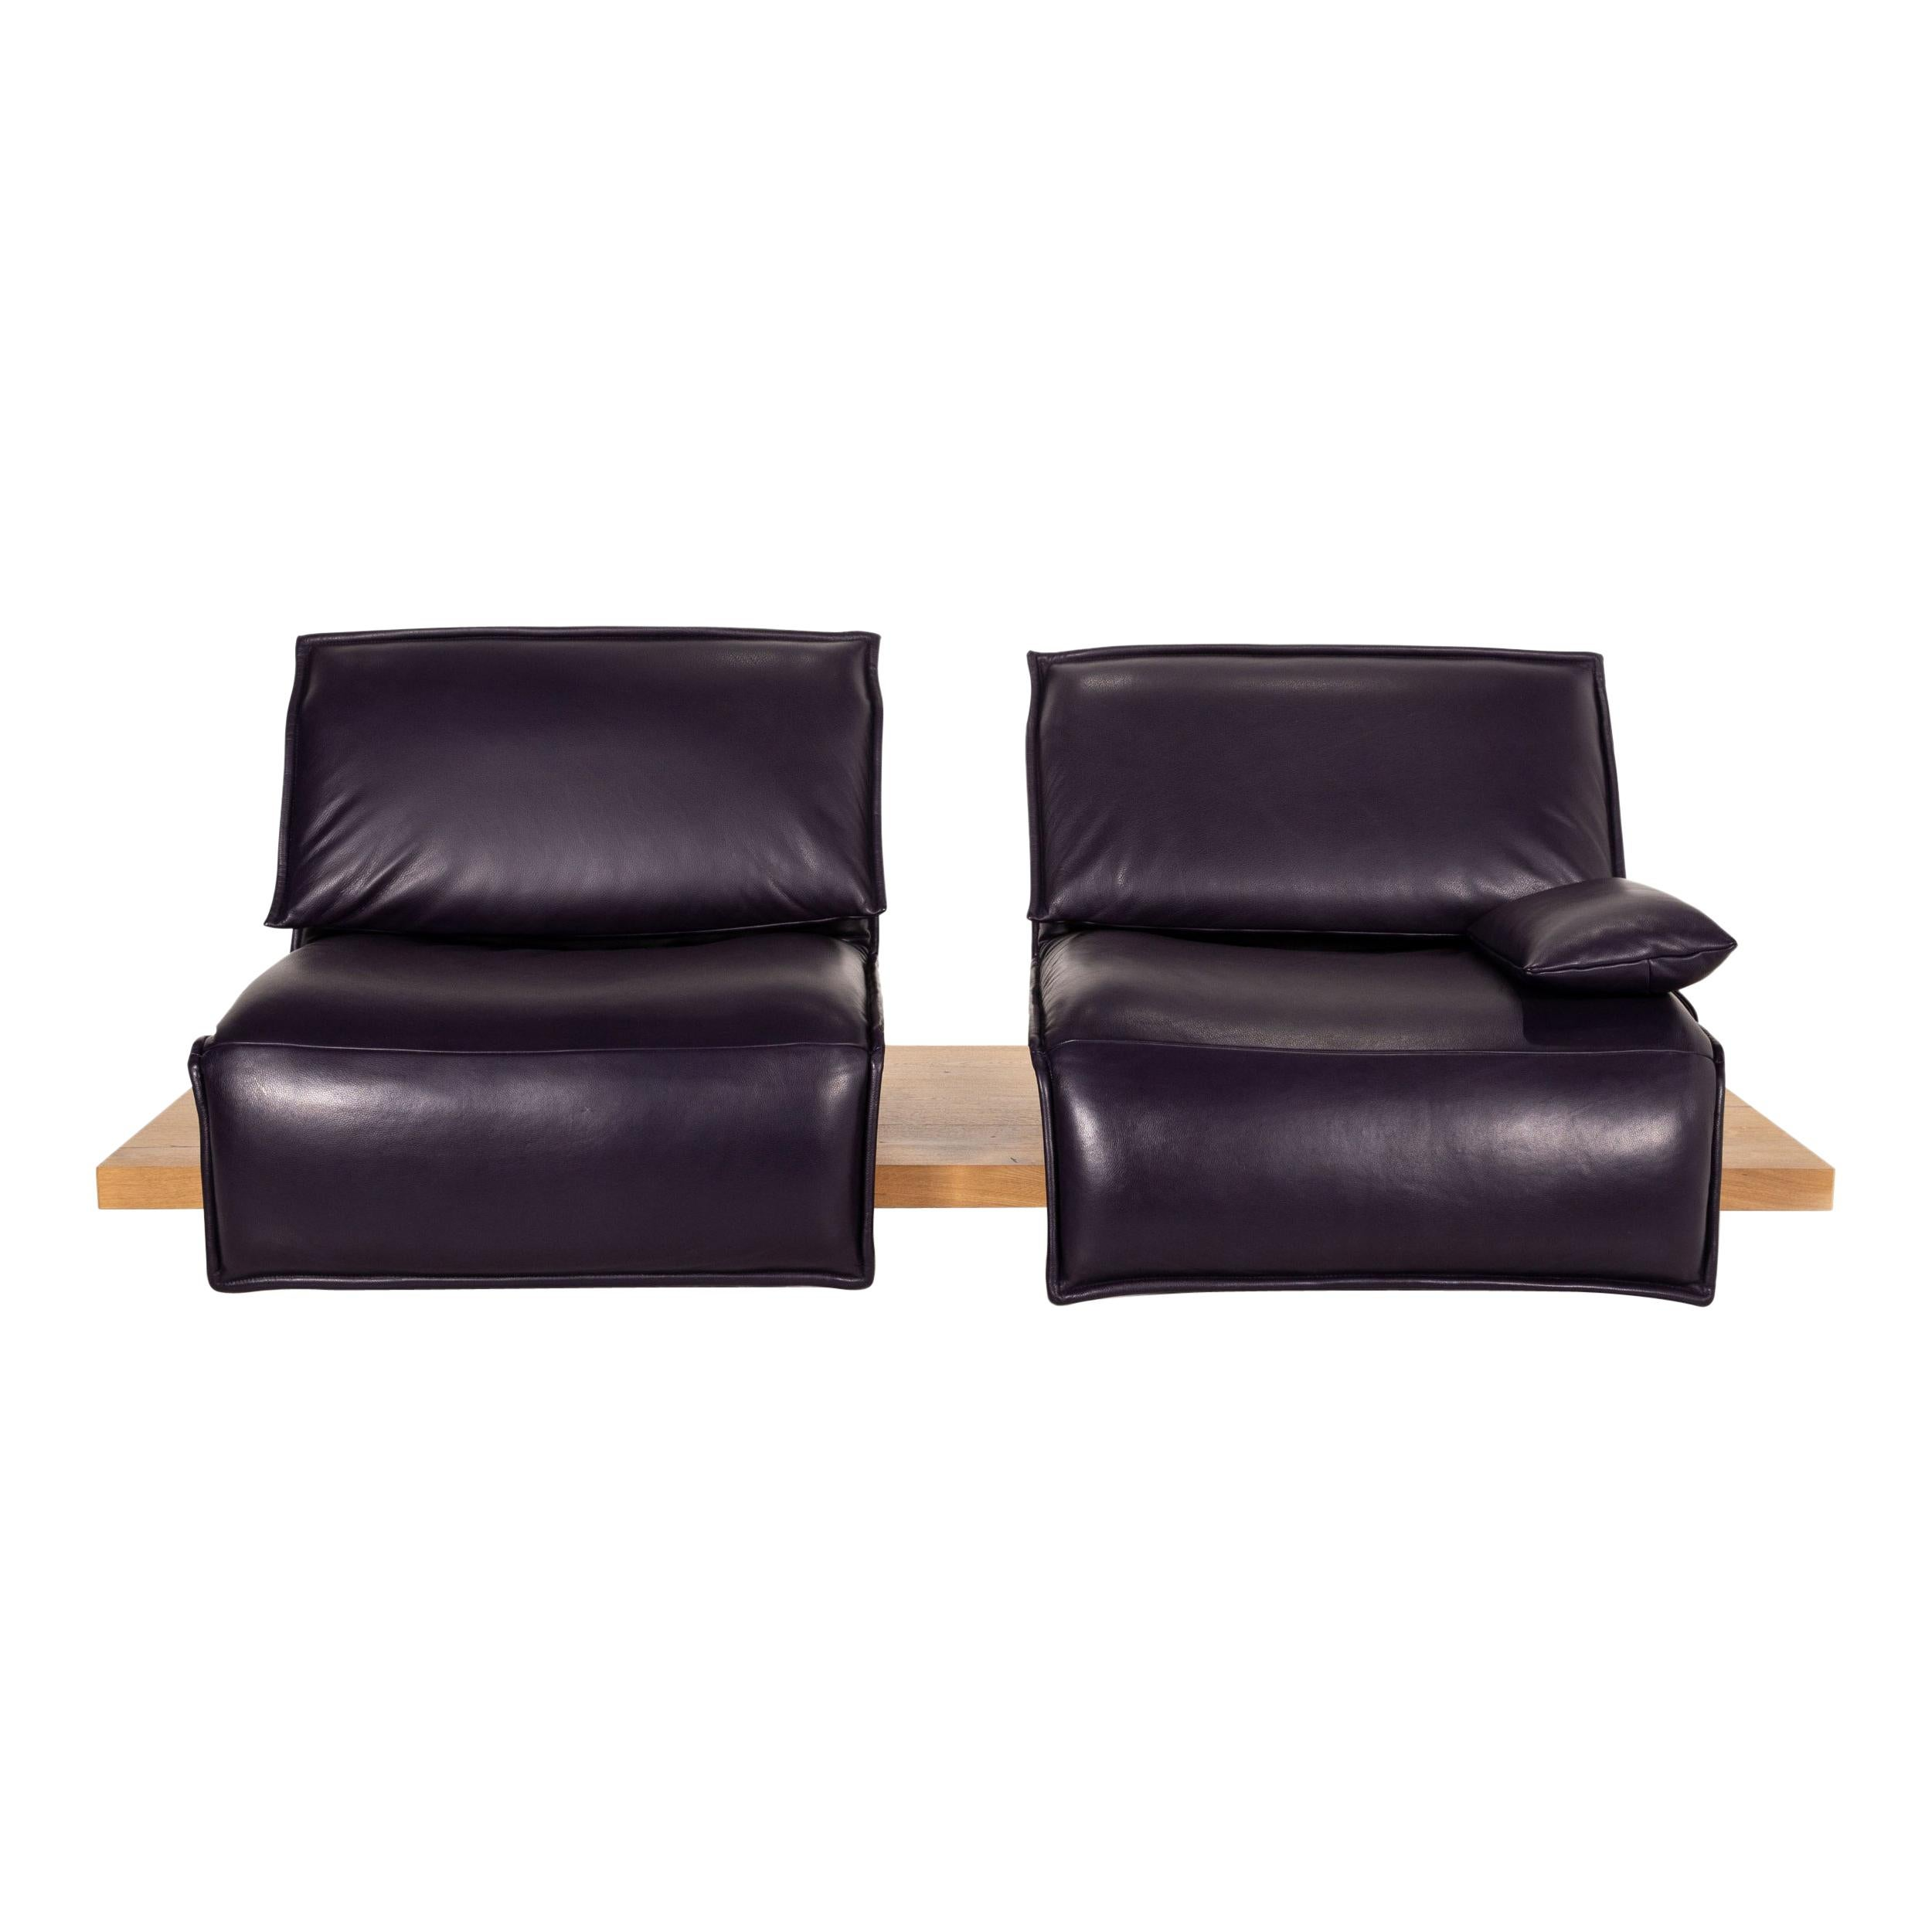 Koinor Free Motion Edit 2 Leather Sofa Purple Two Seater Electric Function Couch